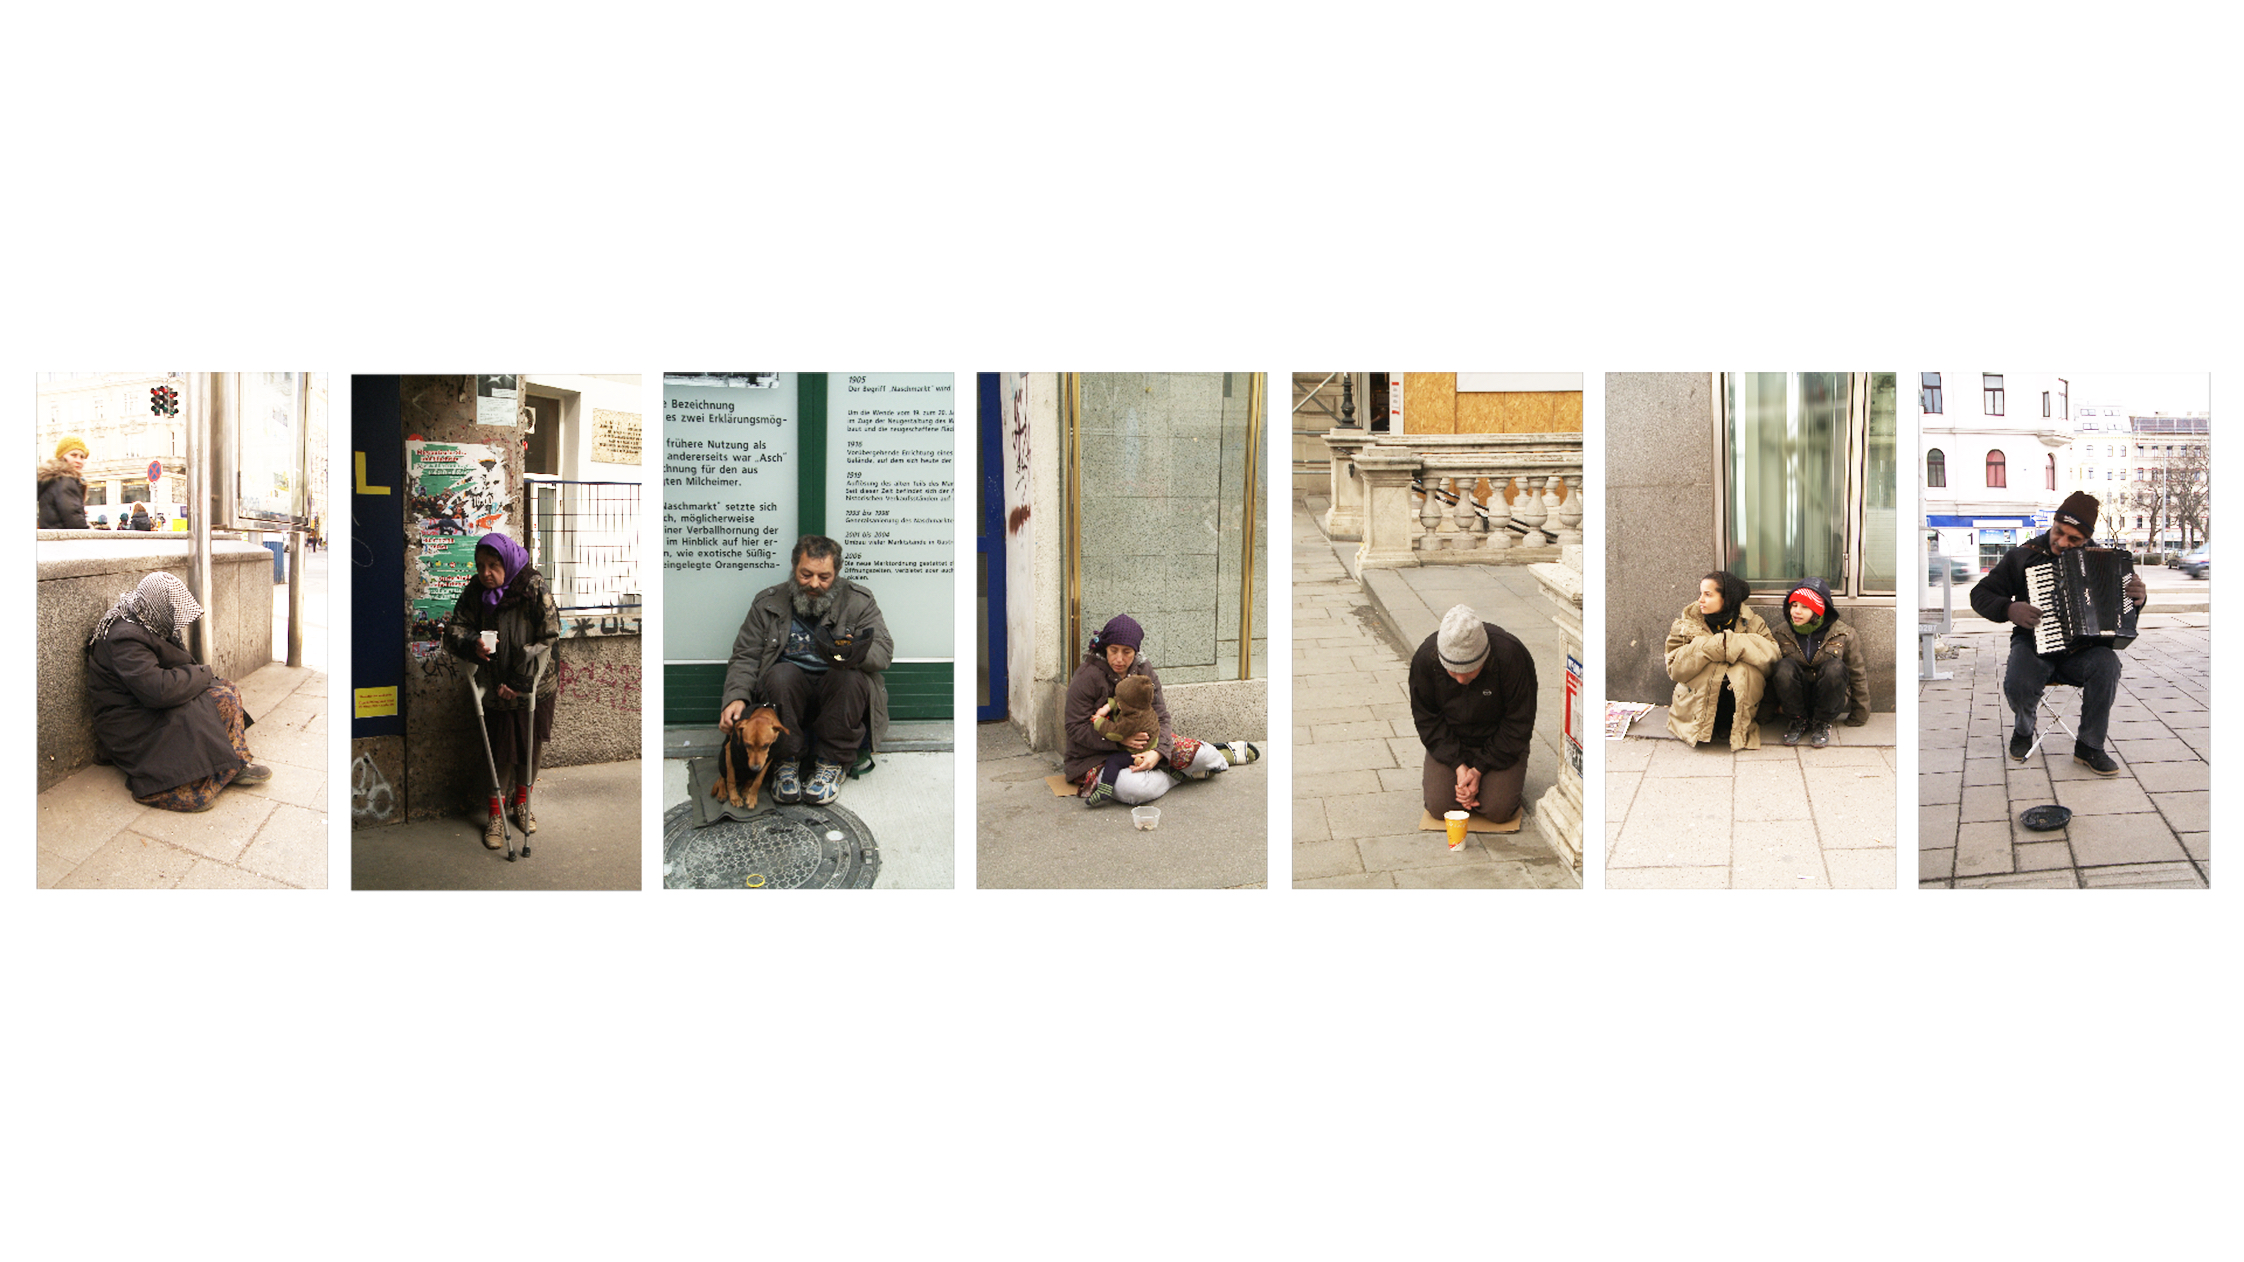 APPROPRIATED BEGGARS (2013)